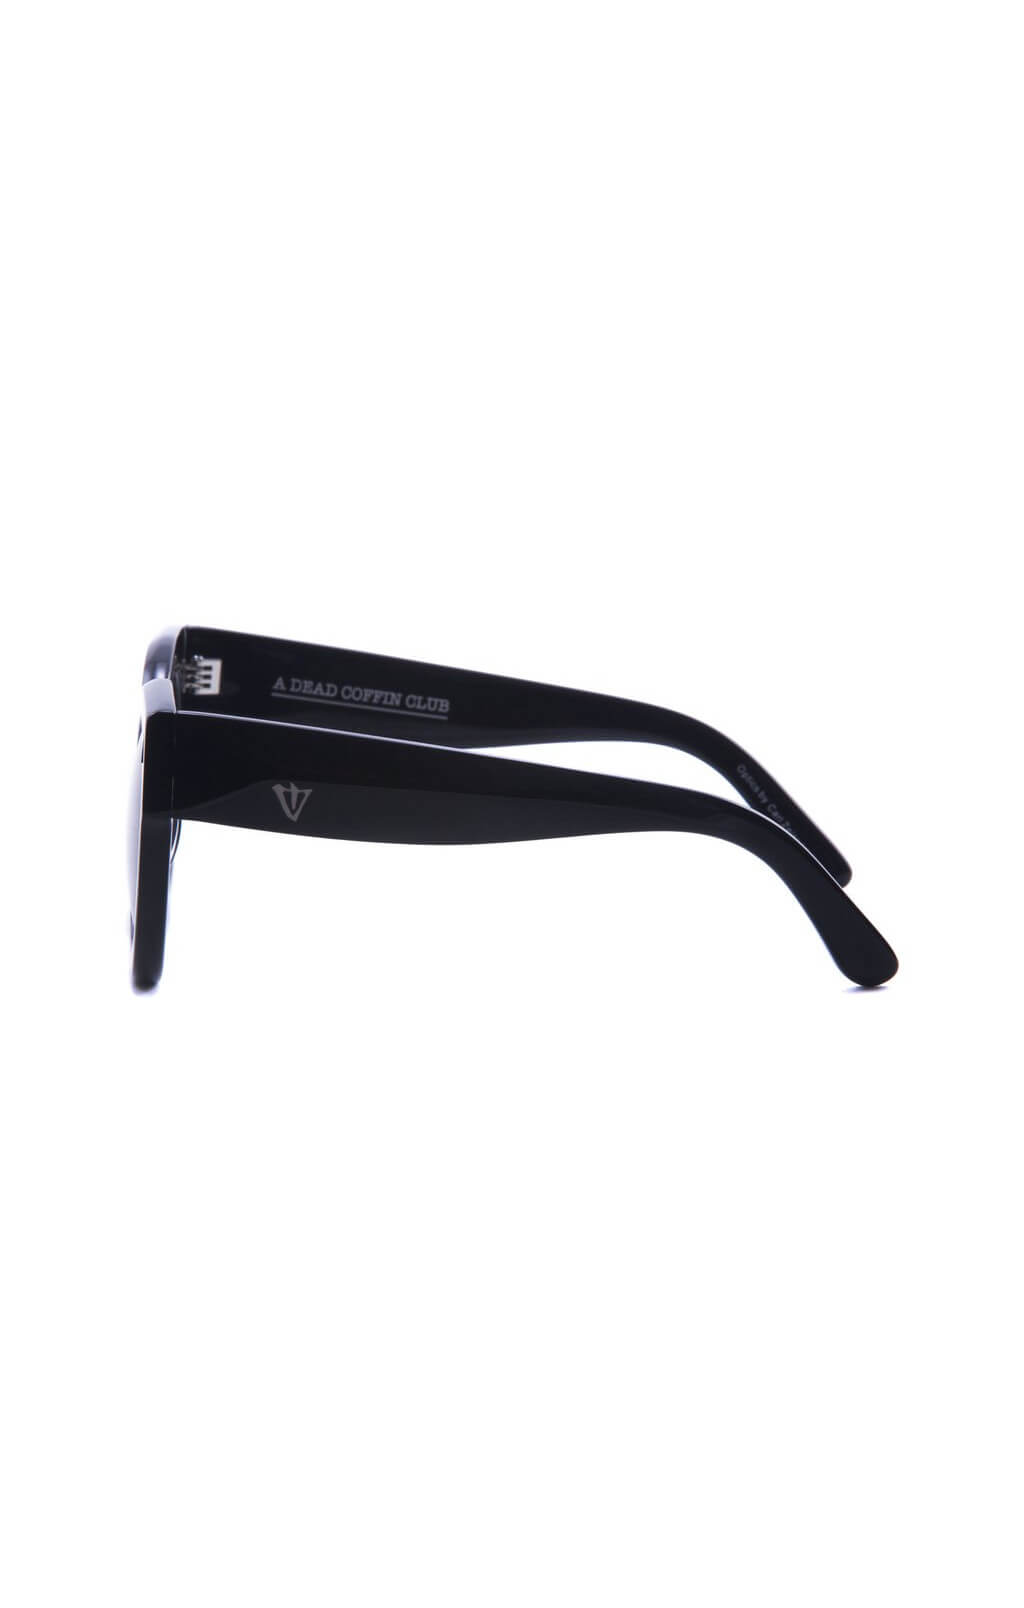 valley a dead coffin club sunglasses gloss black